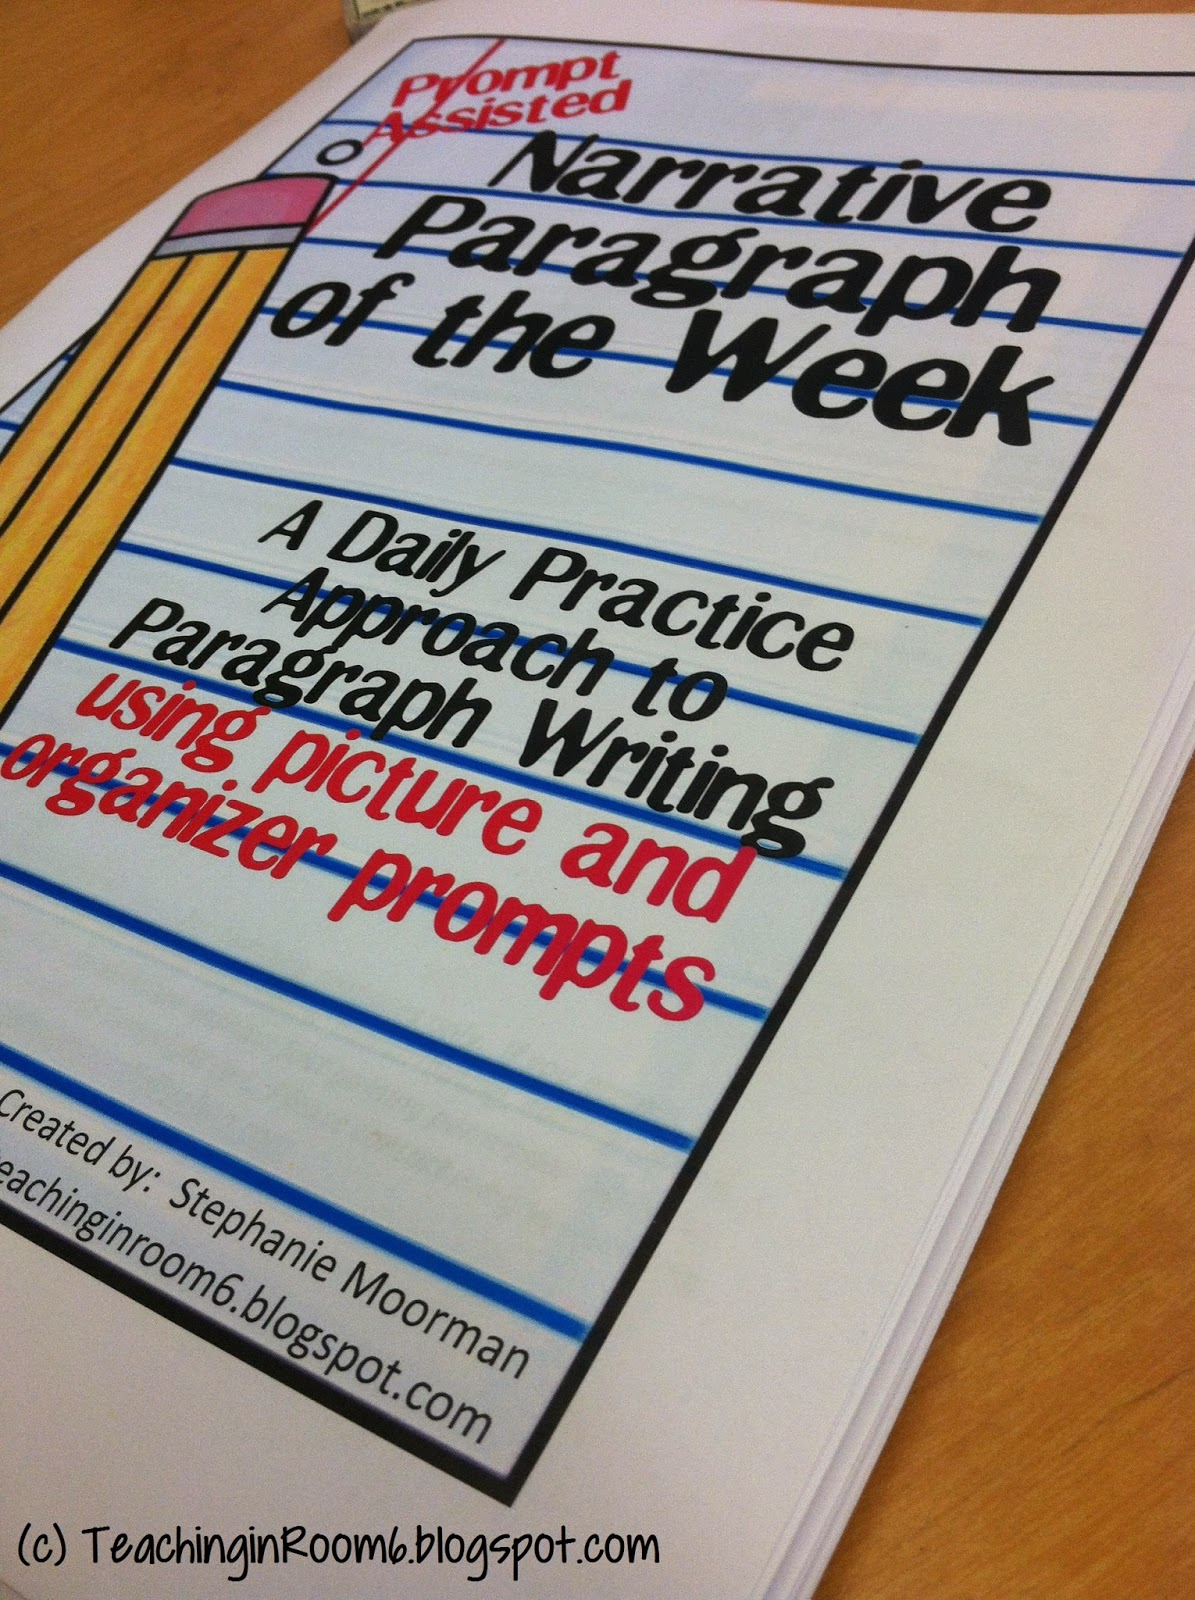 http://www.teacherspayteachers.com/Product/Paragraph-of-the-Week-Fictional-Narrative-Prompt-Assisted-1539380